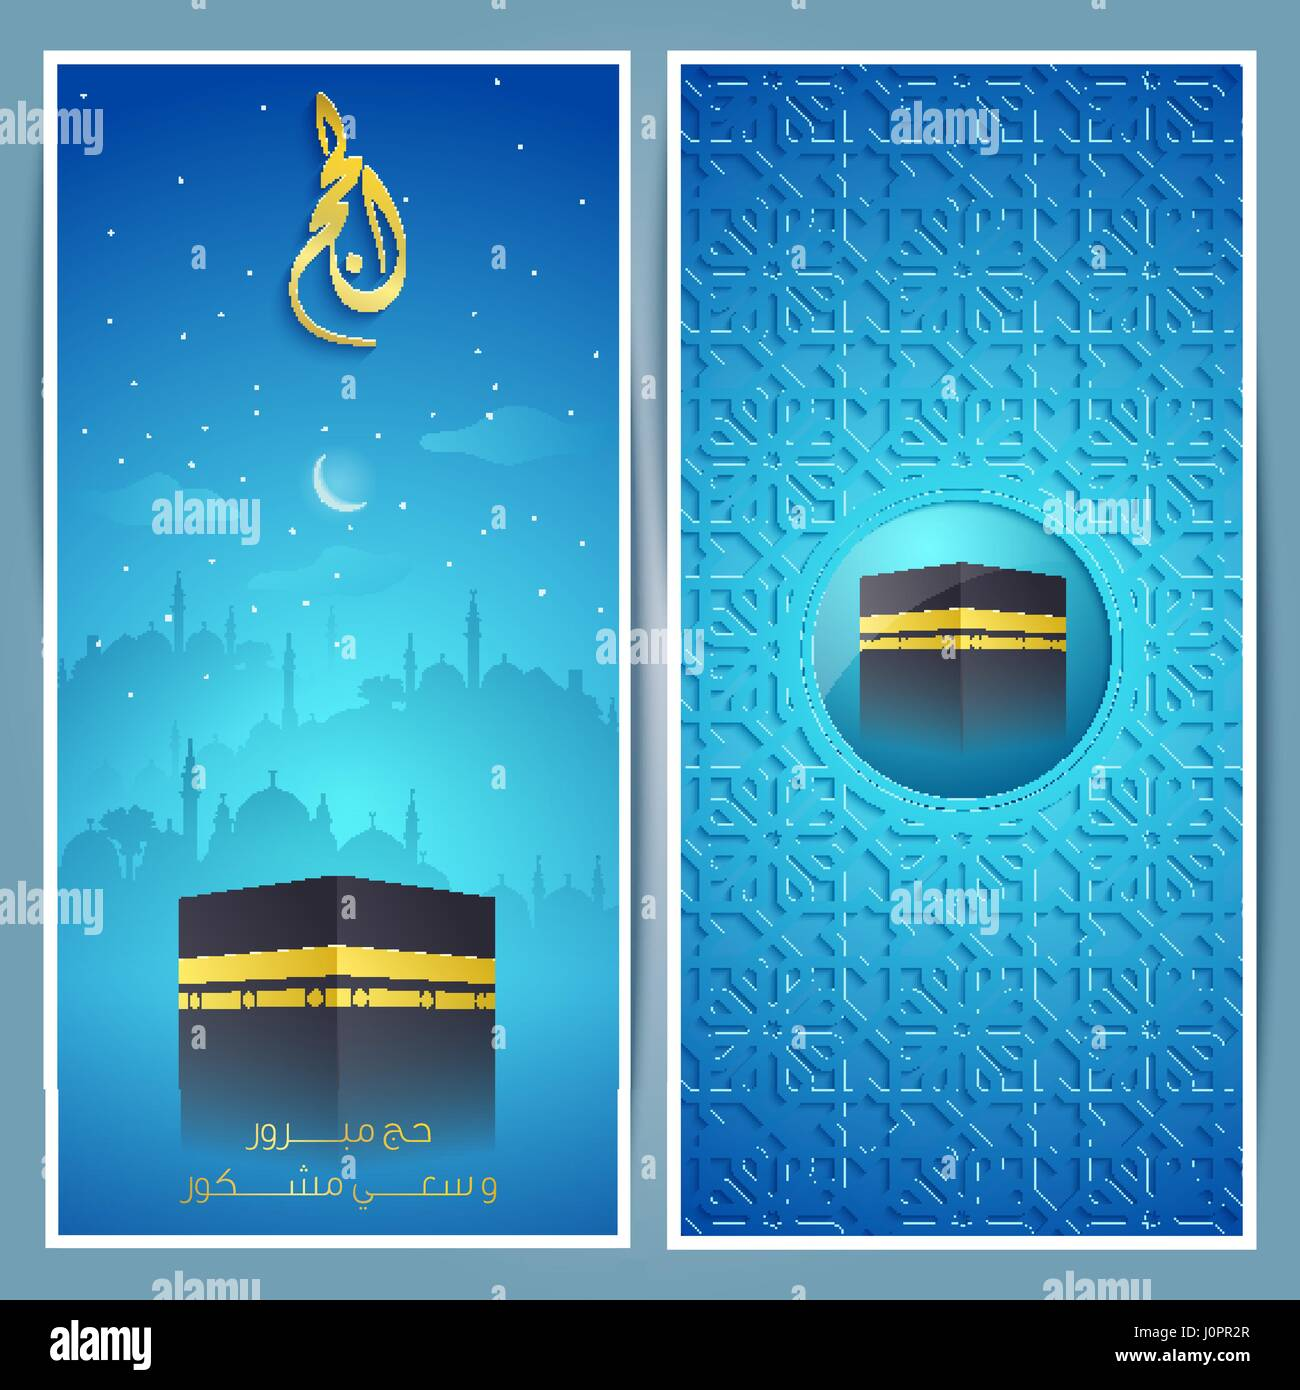 Umrah Banner: Islamic Greeting Card Template With Mosque And Arabic